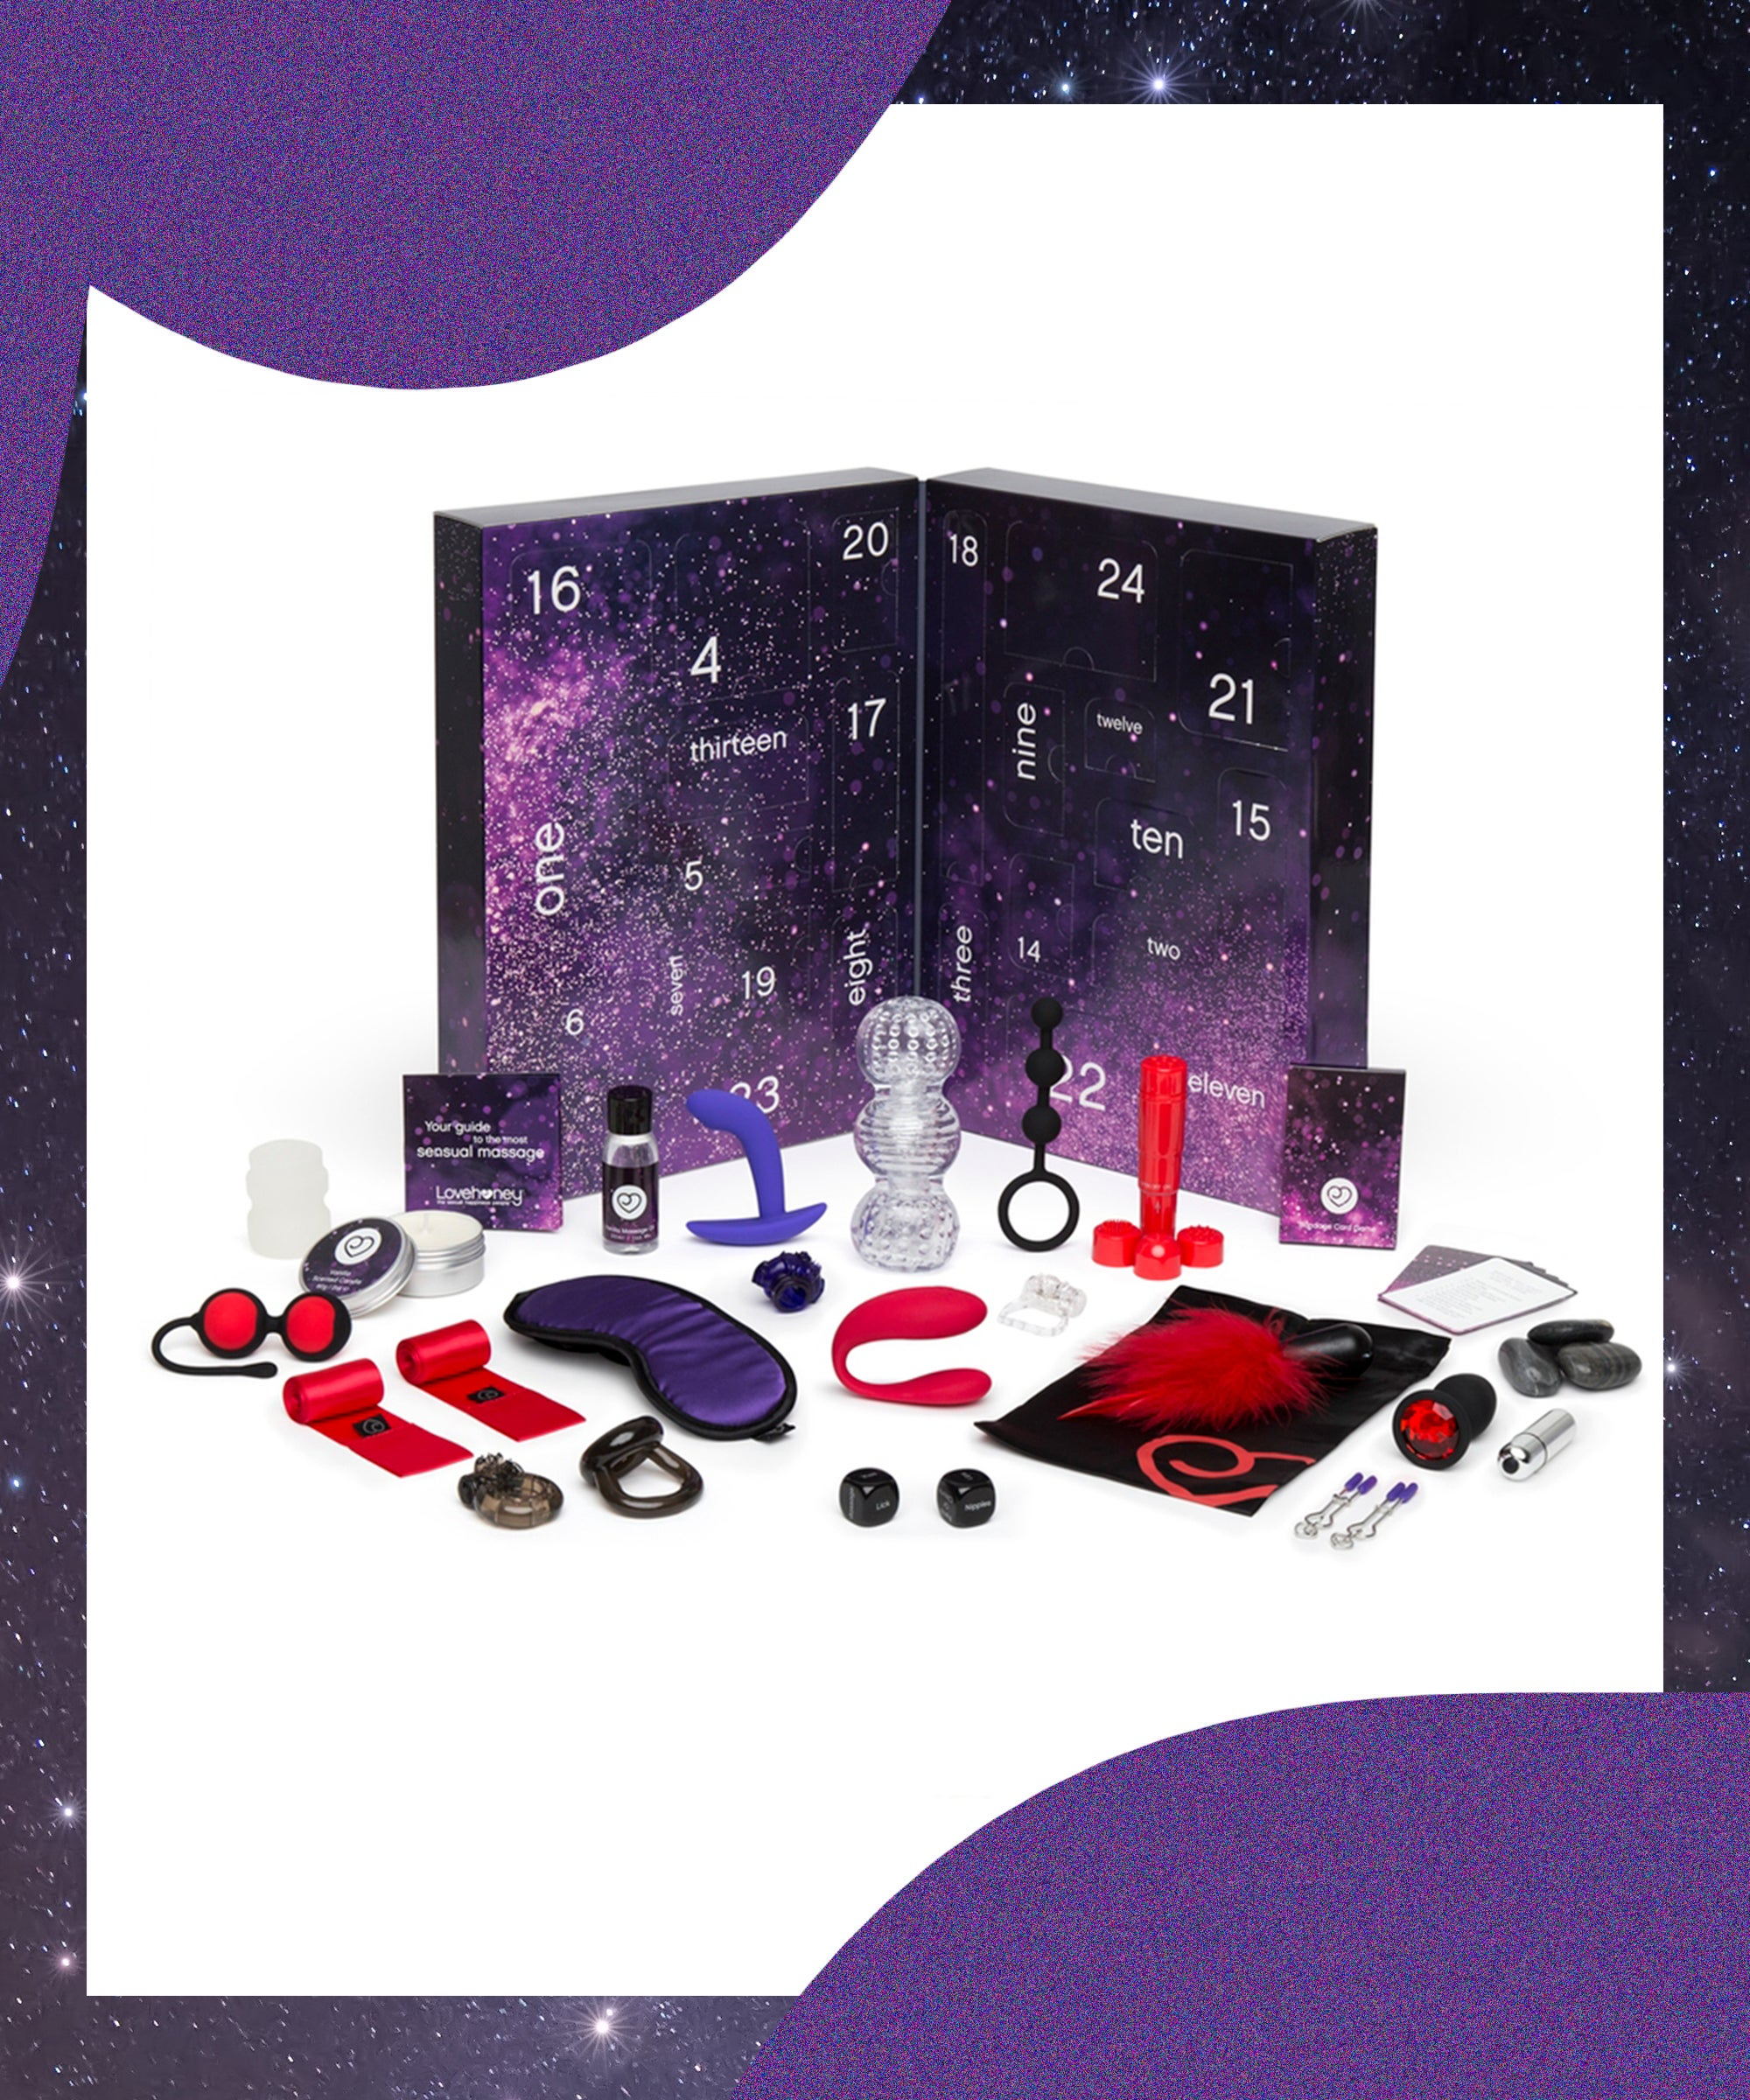 Happy Holidays From This Sex Toy Advent Calendar — Yes, You Read That Correctly